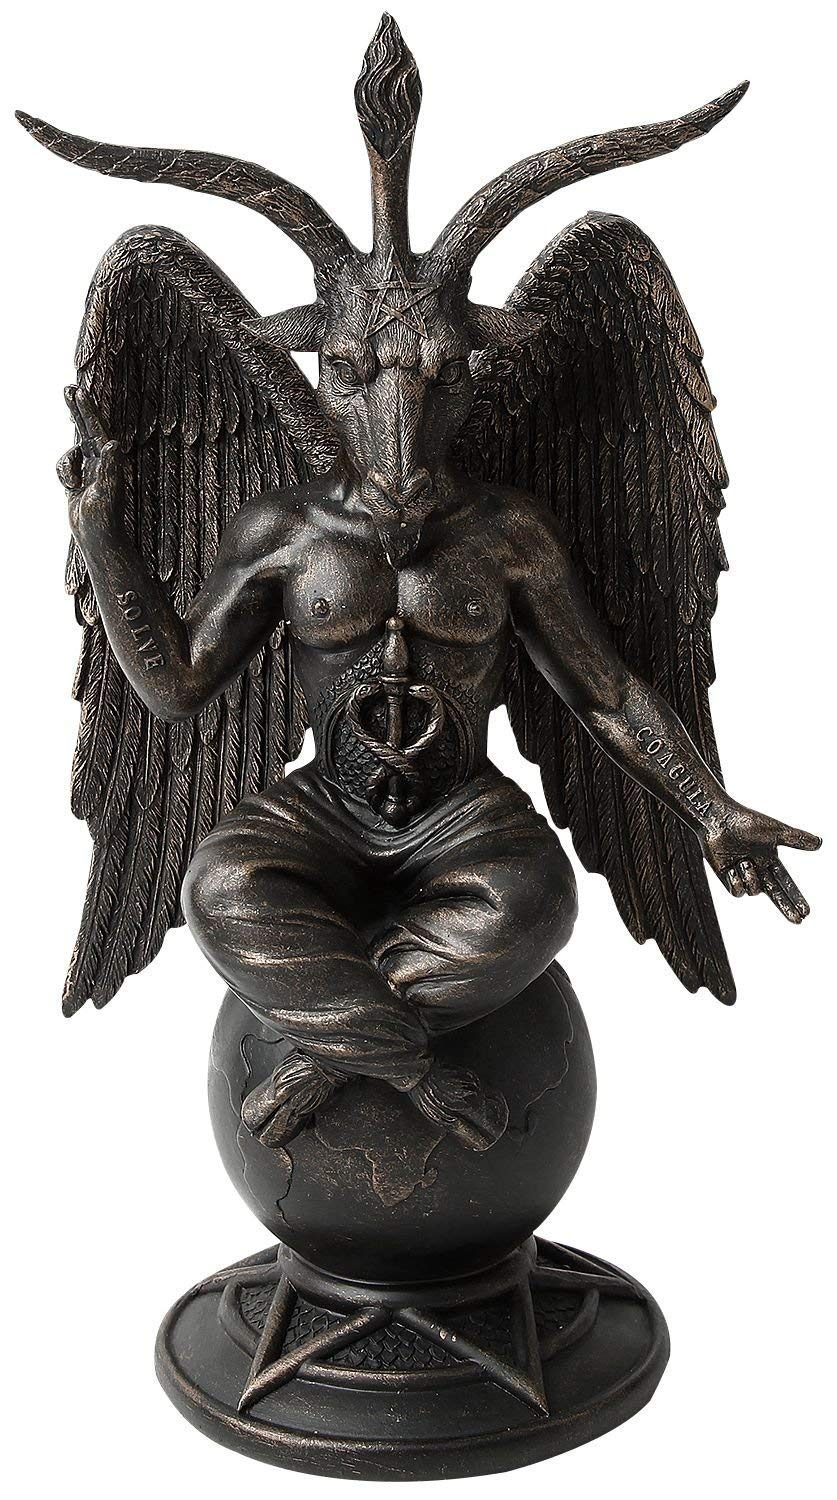 Baphomet Antiquity Figurine Satanic Demon Occult Goat of Mendes Statue Pagan Ornament